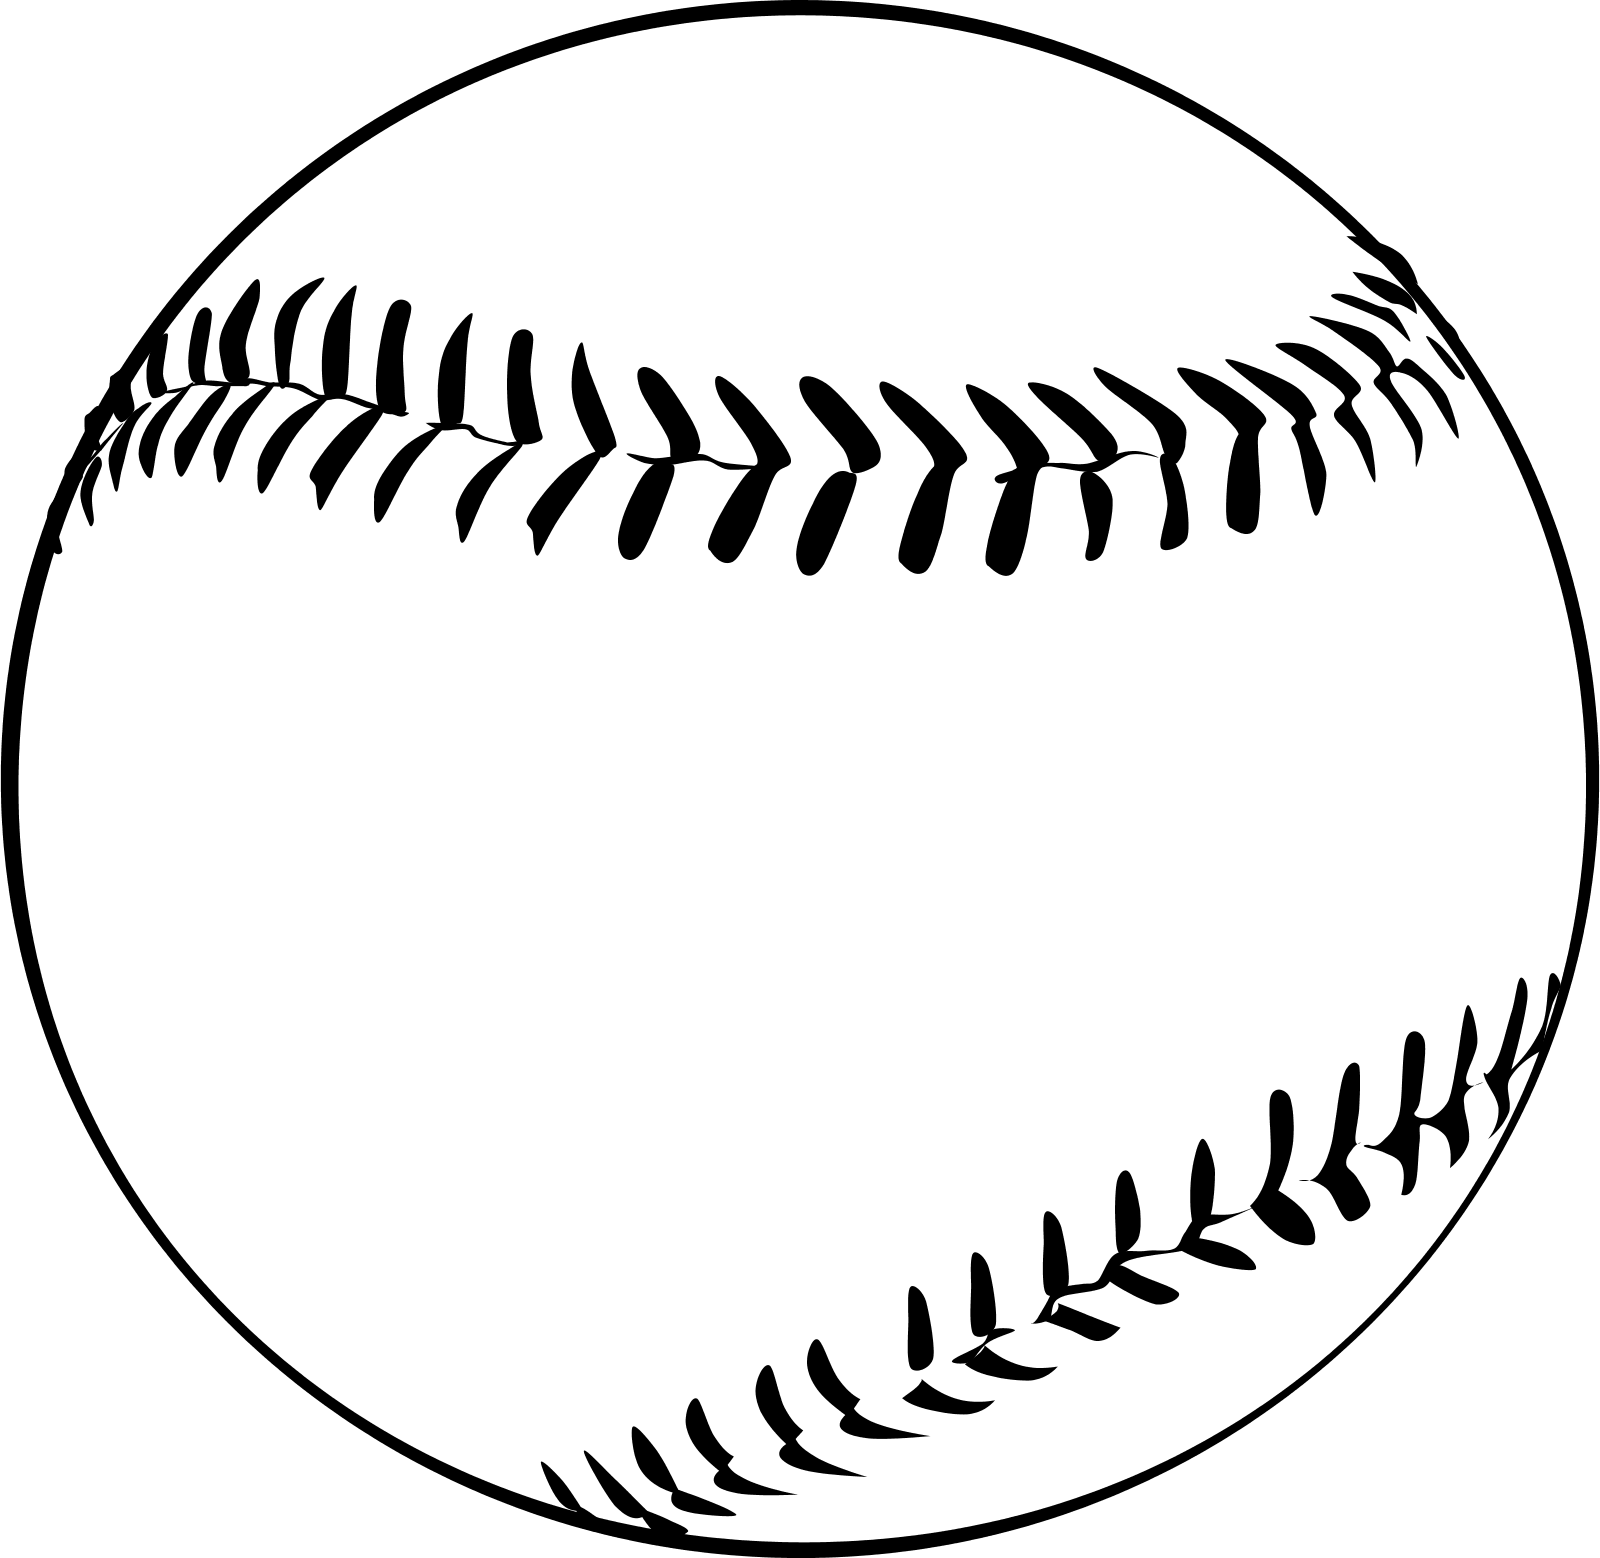 Baseball clipart bow. Black and white png